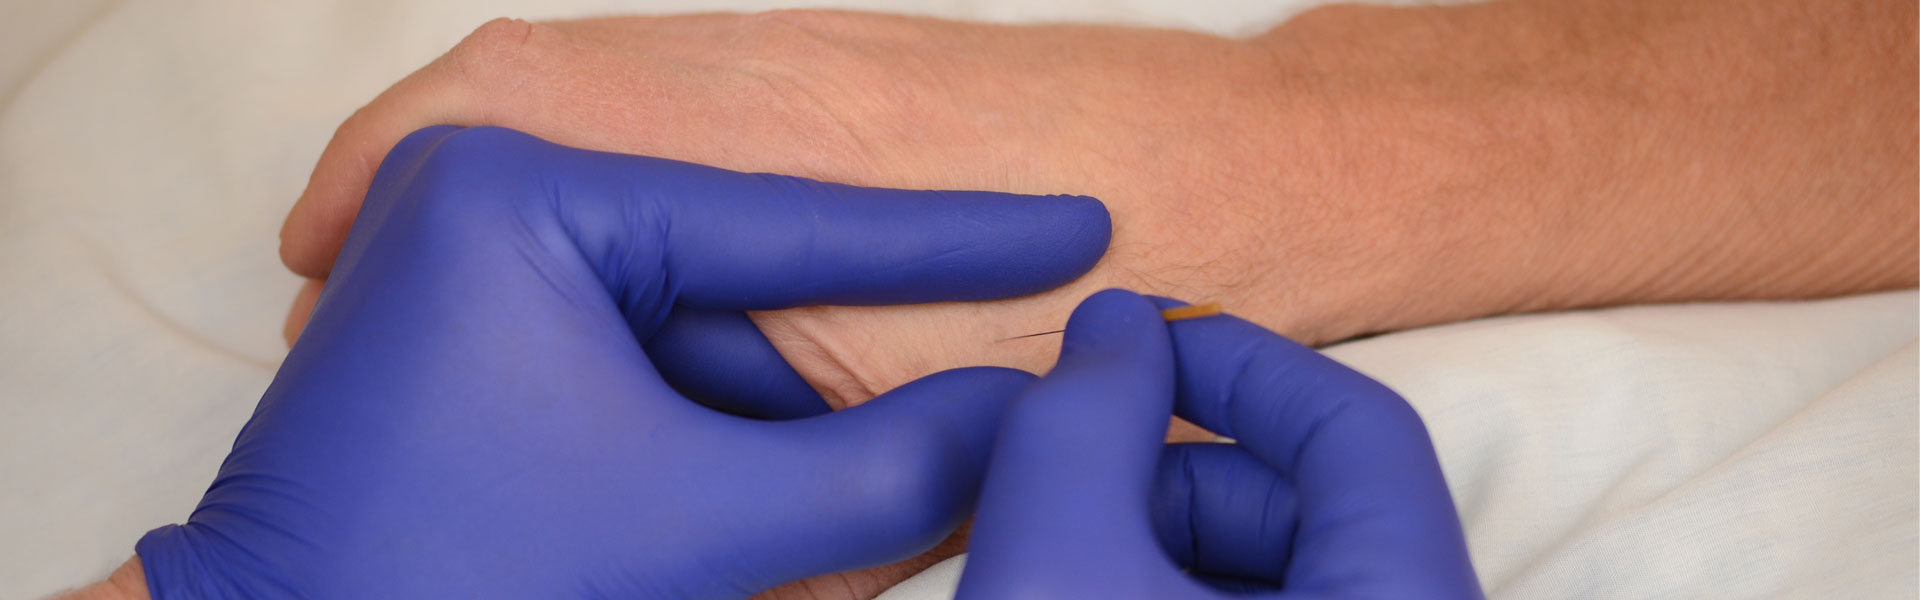 dry needling physical therapy